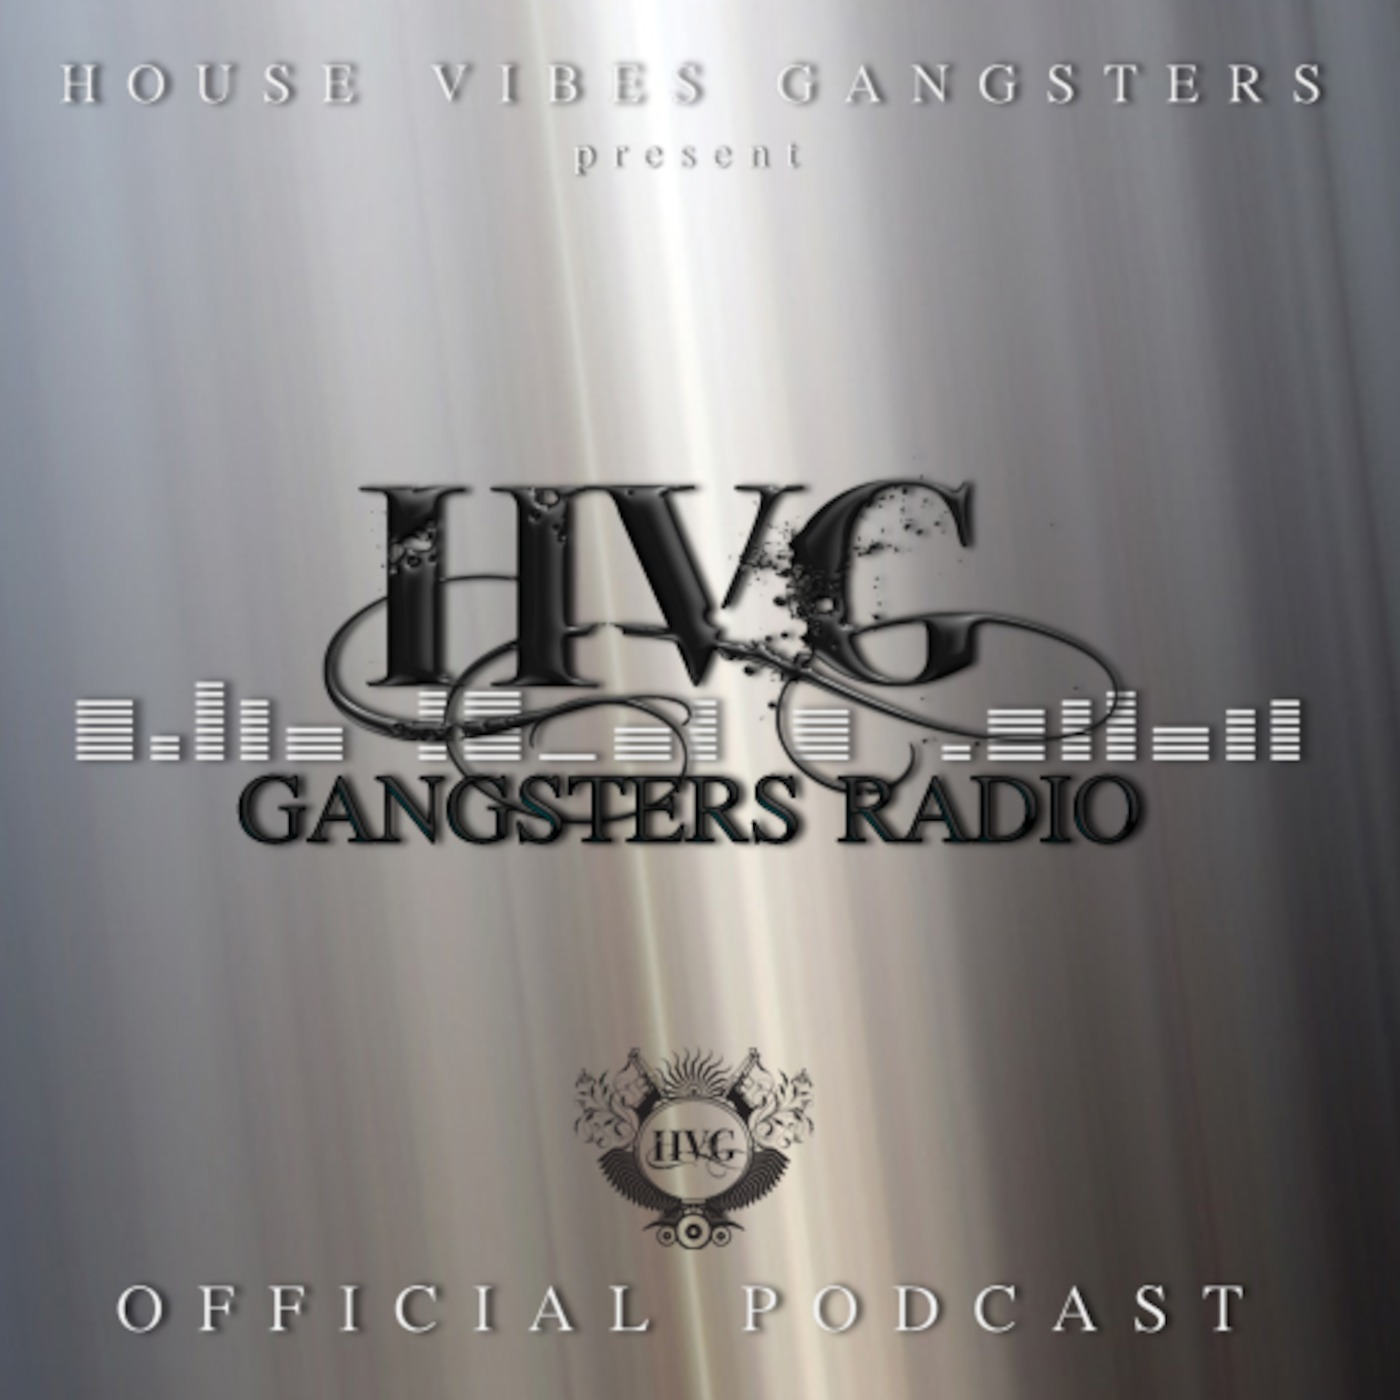 House Vibes Gangsters Radio